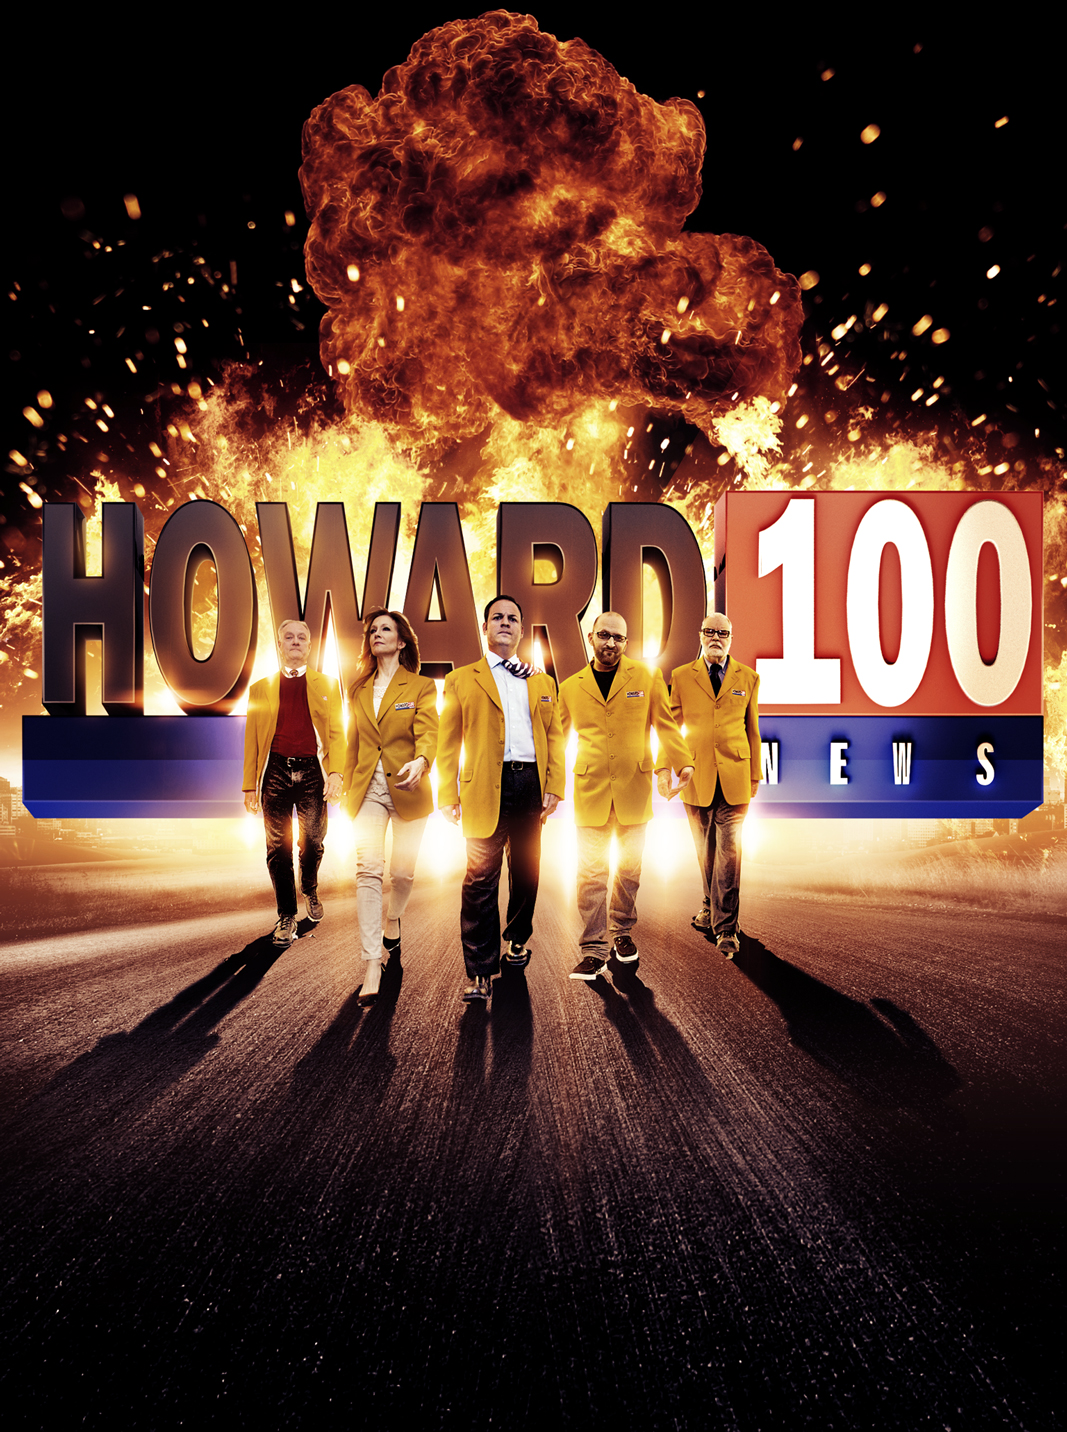 Howard 100 News key art